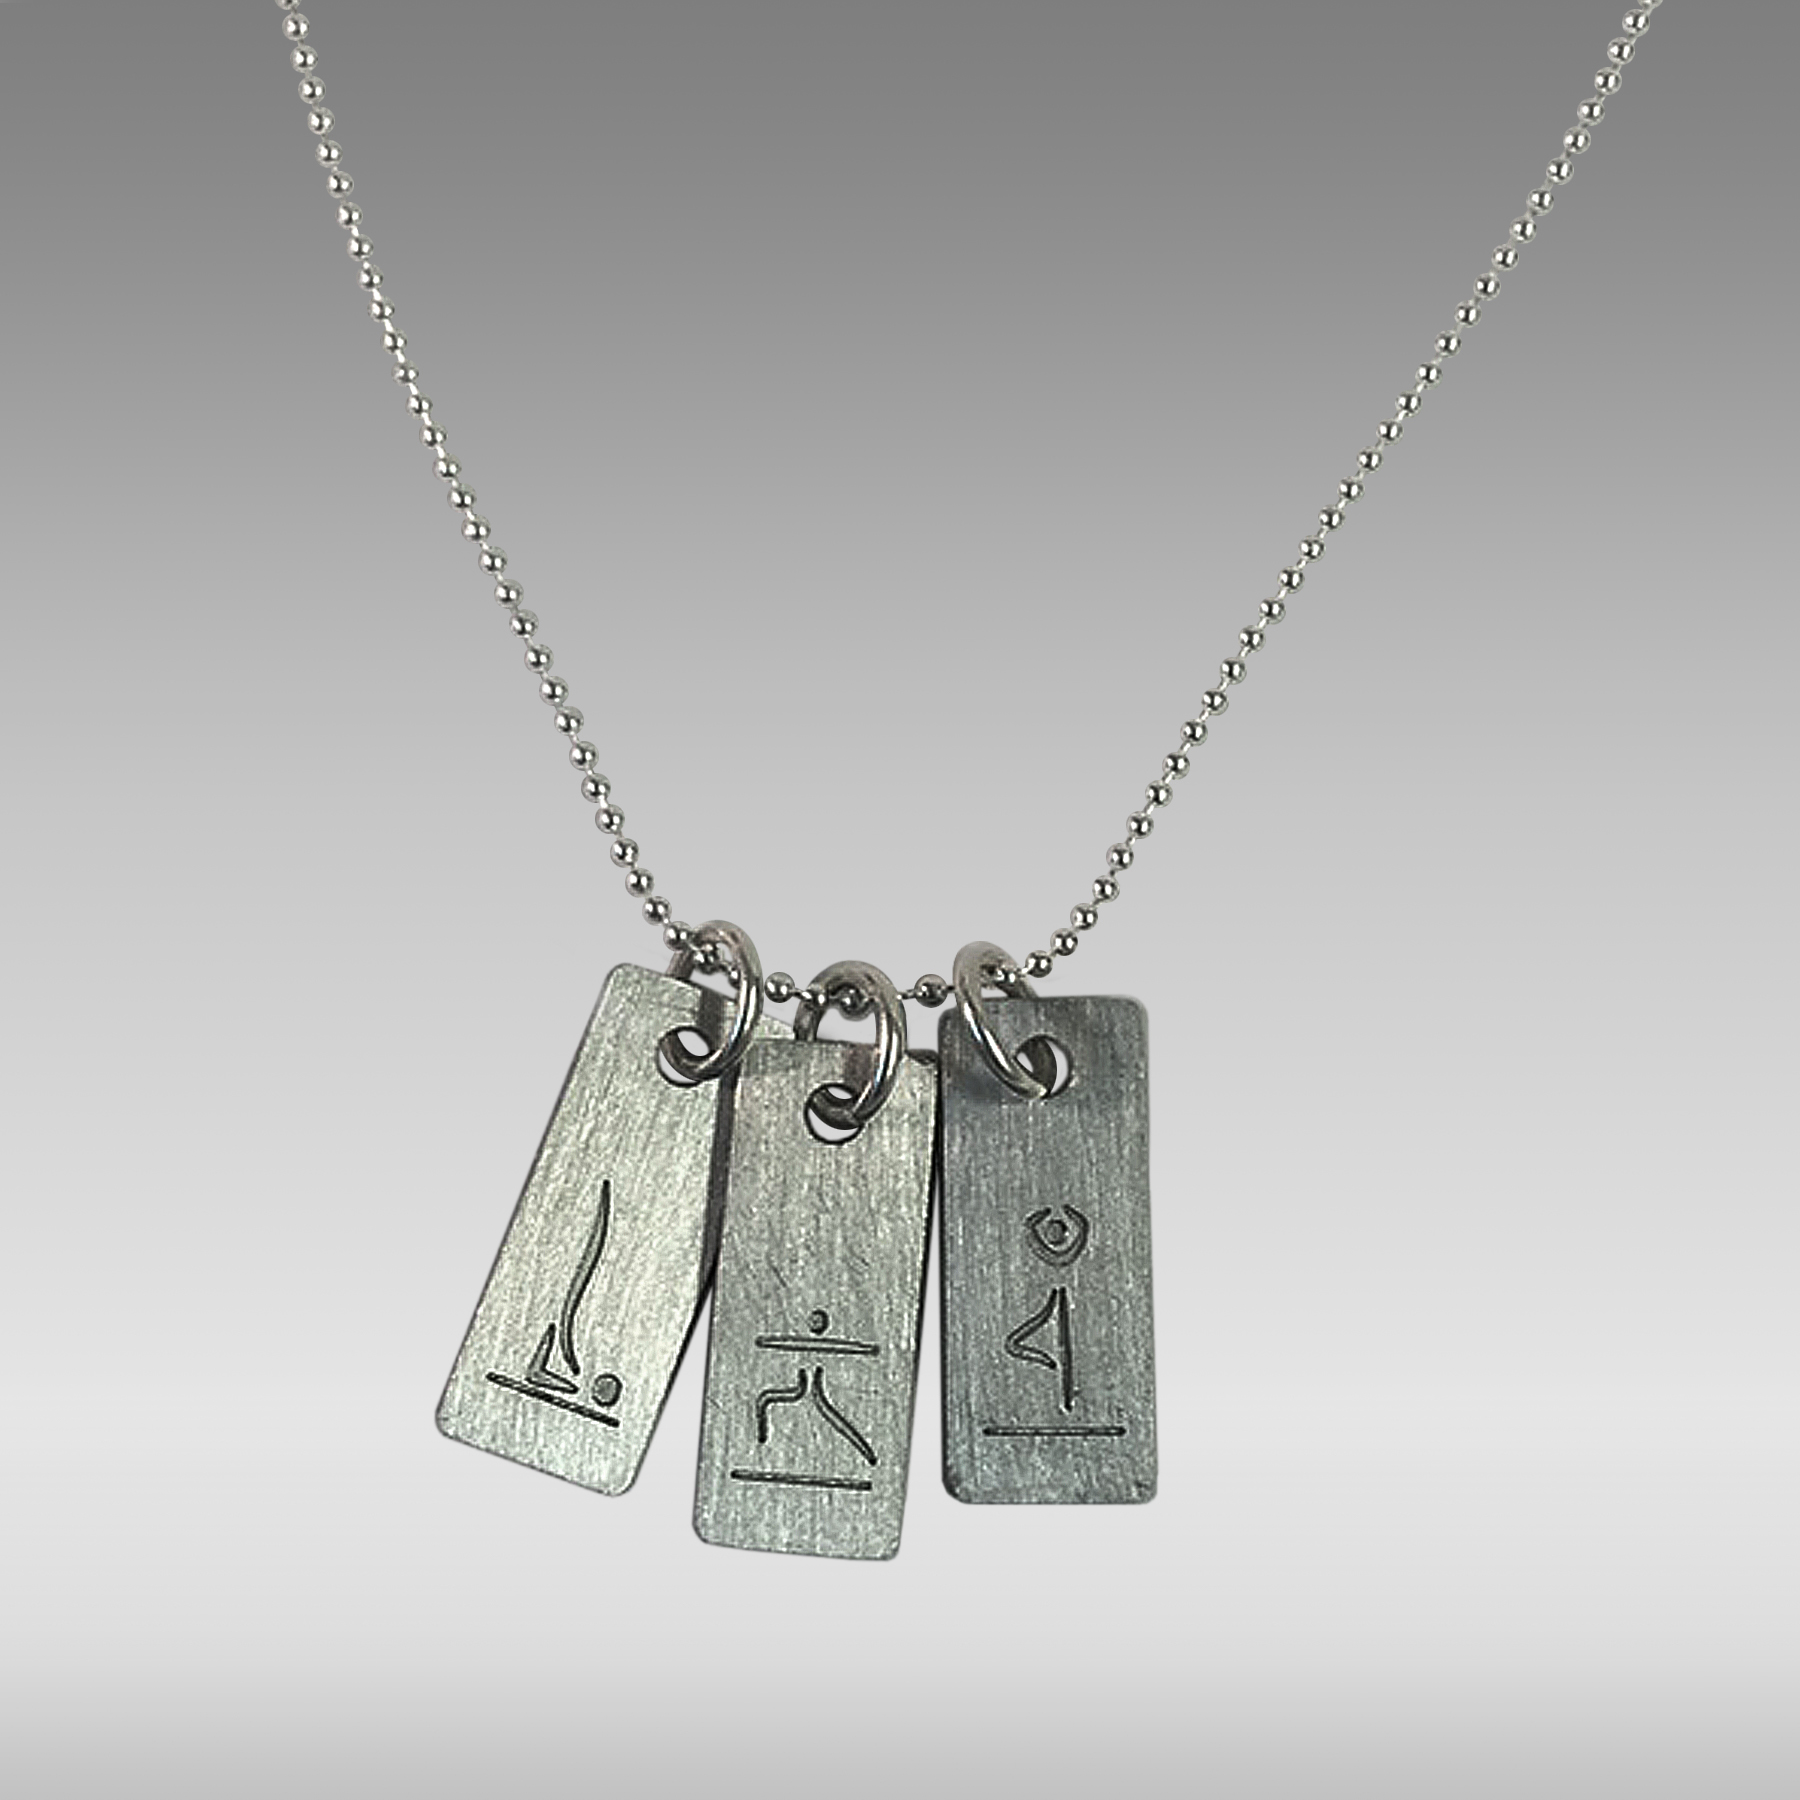 PRANA Charms are inspired by dance and movement--Celebrate your every move!